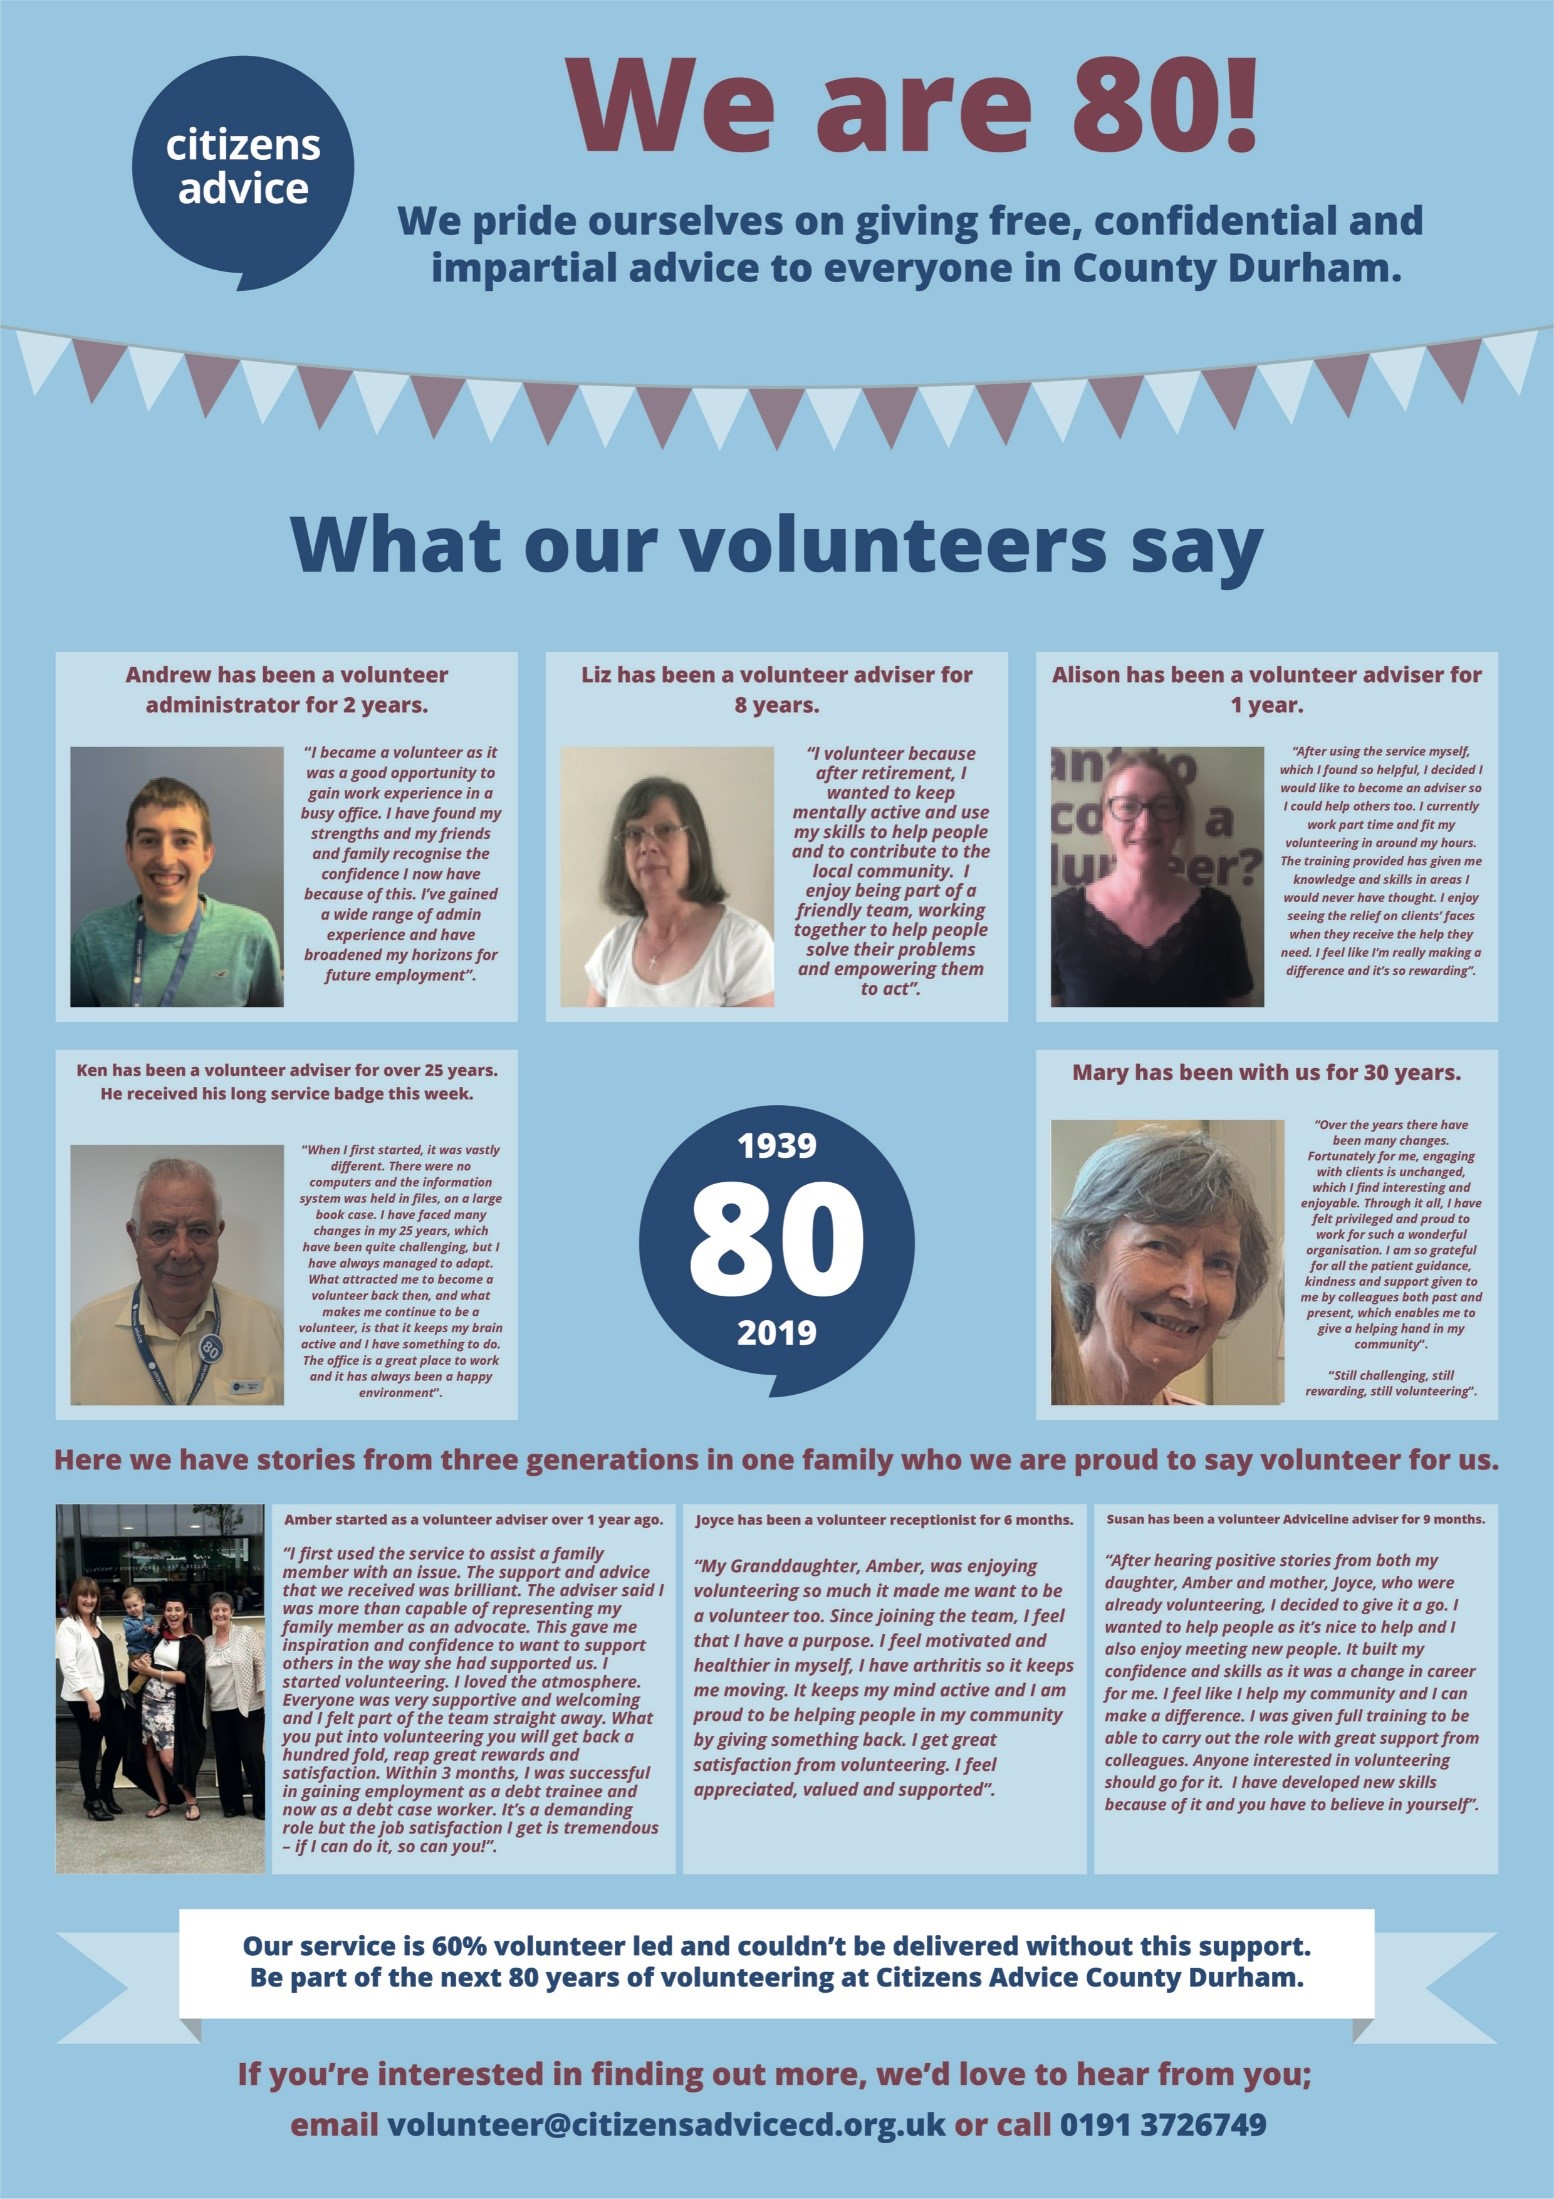 What our volunteers say